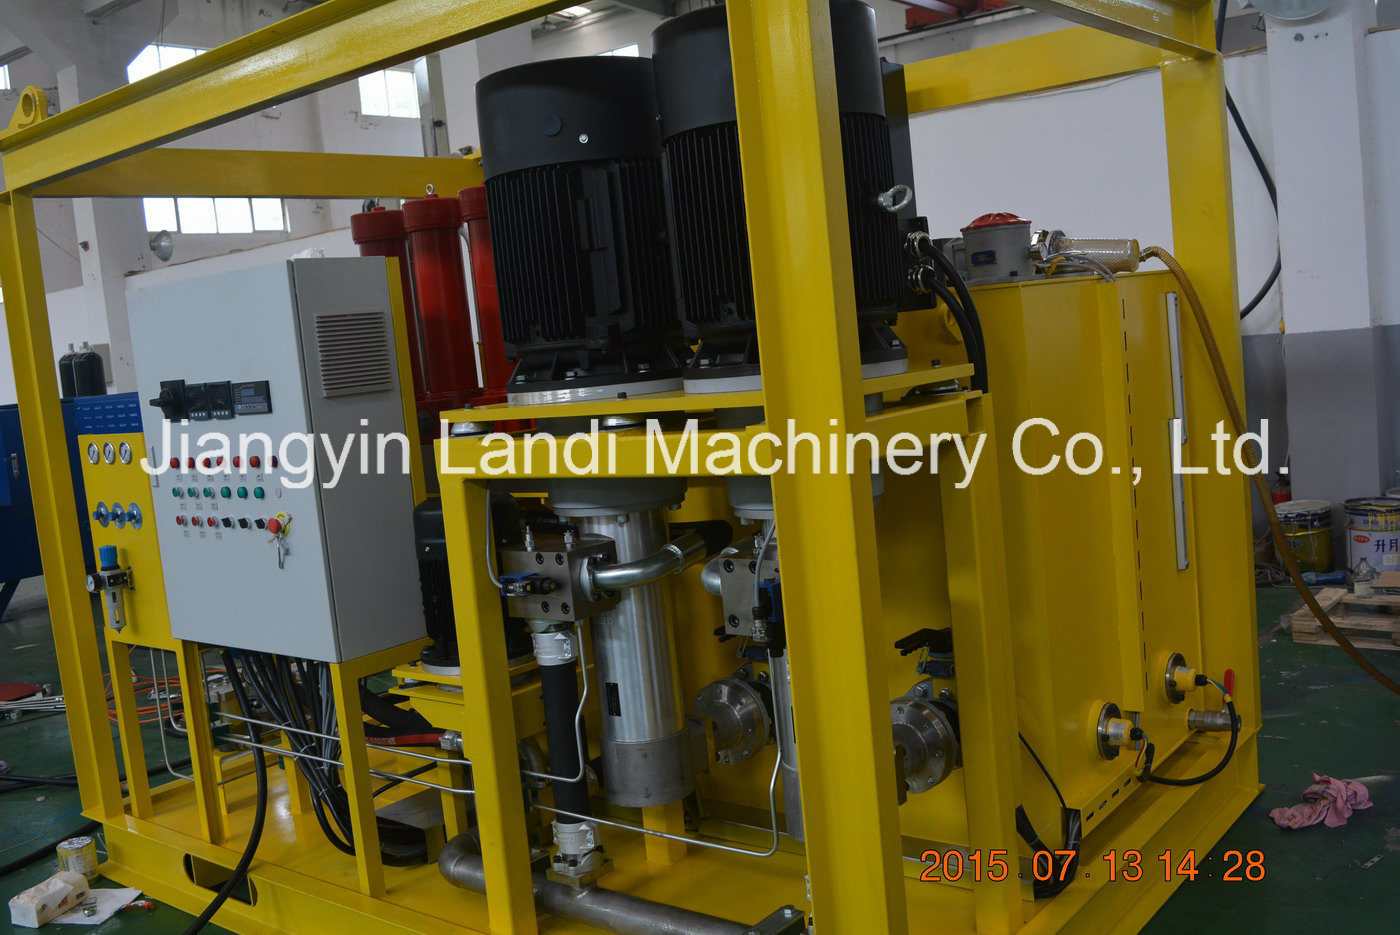 Hydraulic Power Unit (Hydraulic Power Pack) for Heavy Industry